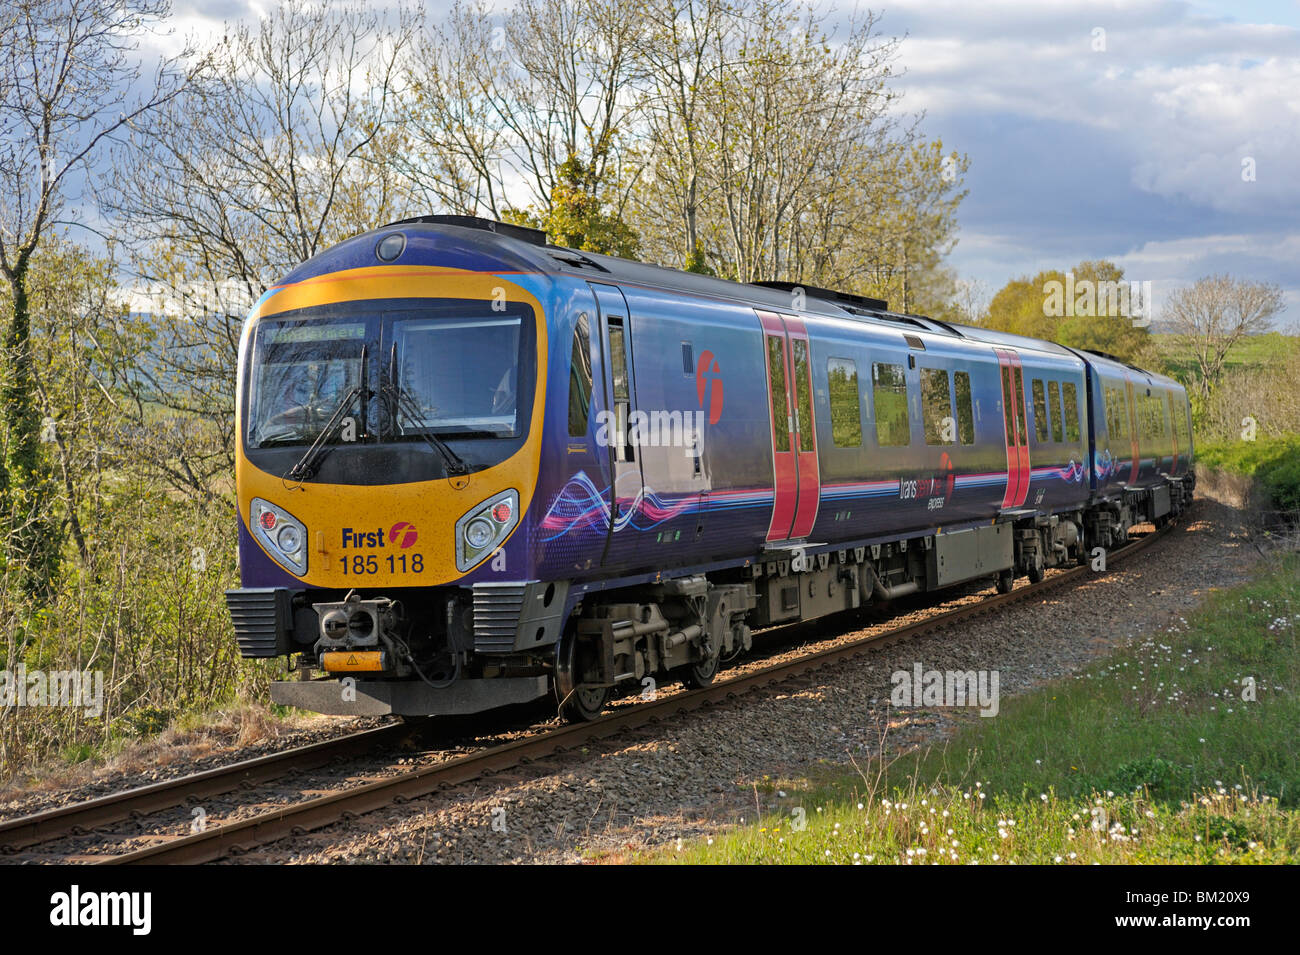 First TransPennine Express, DMU Class 185 Desiro, Number 185 118 approaching Oxenholme Station, Cumbria, England, - Stock Image